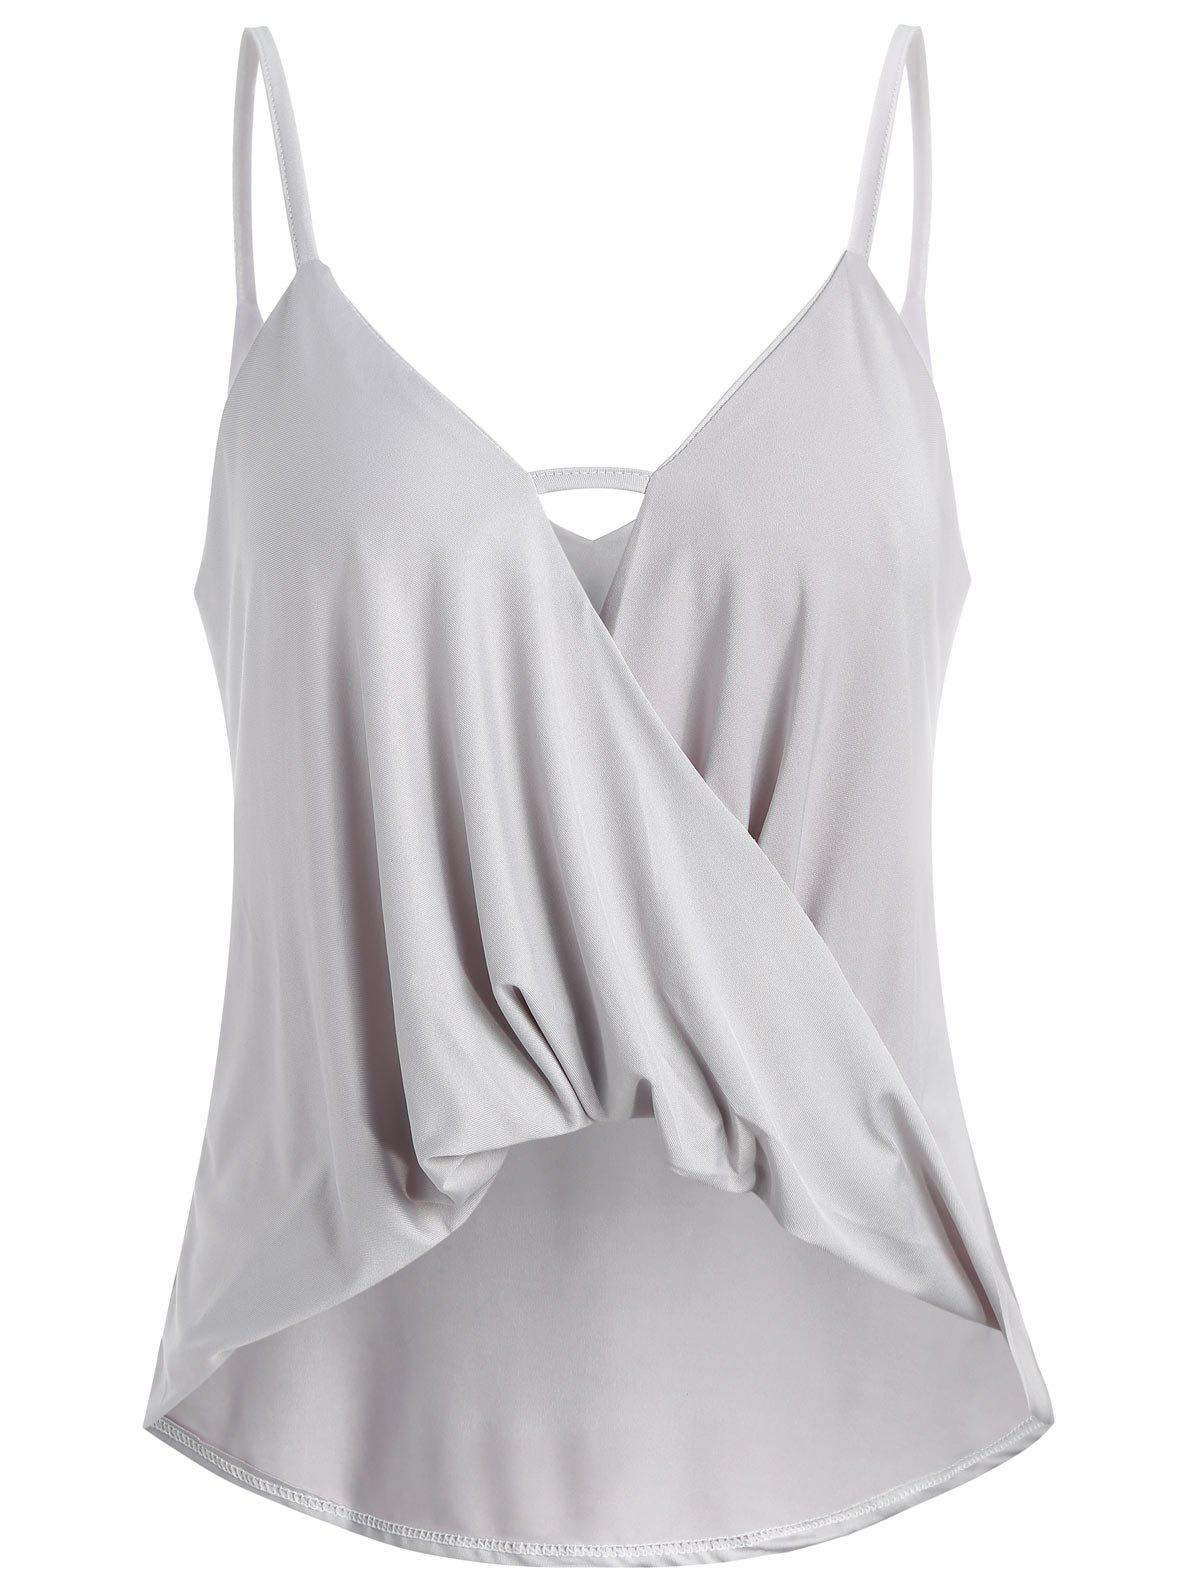 Thin Straps Twist Front Tank Top - LIGHT GRAY S